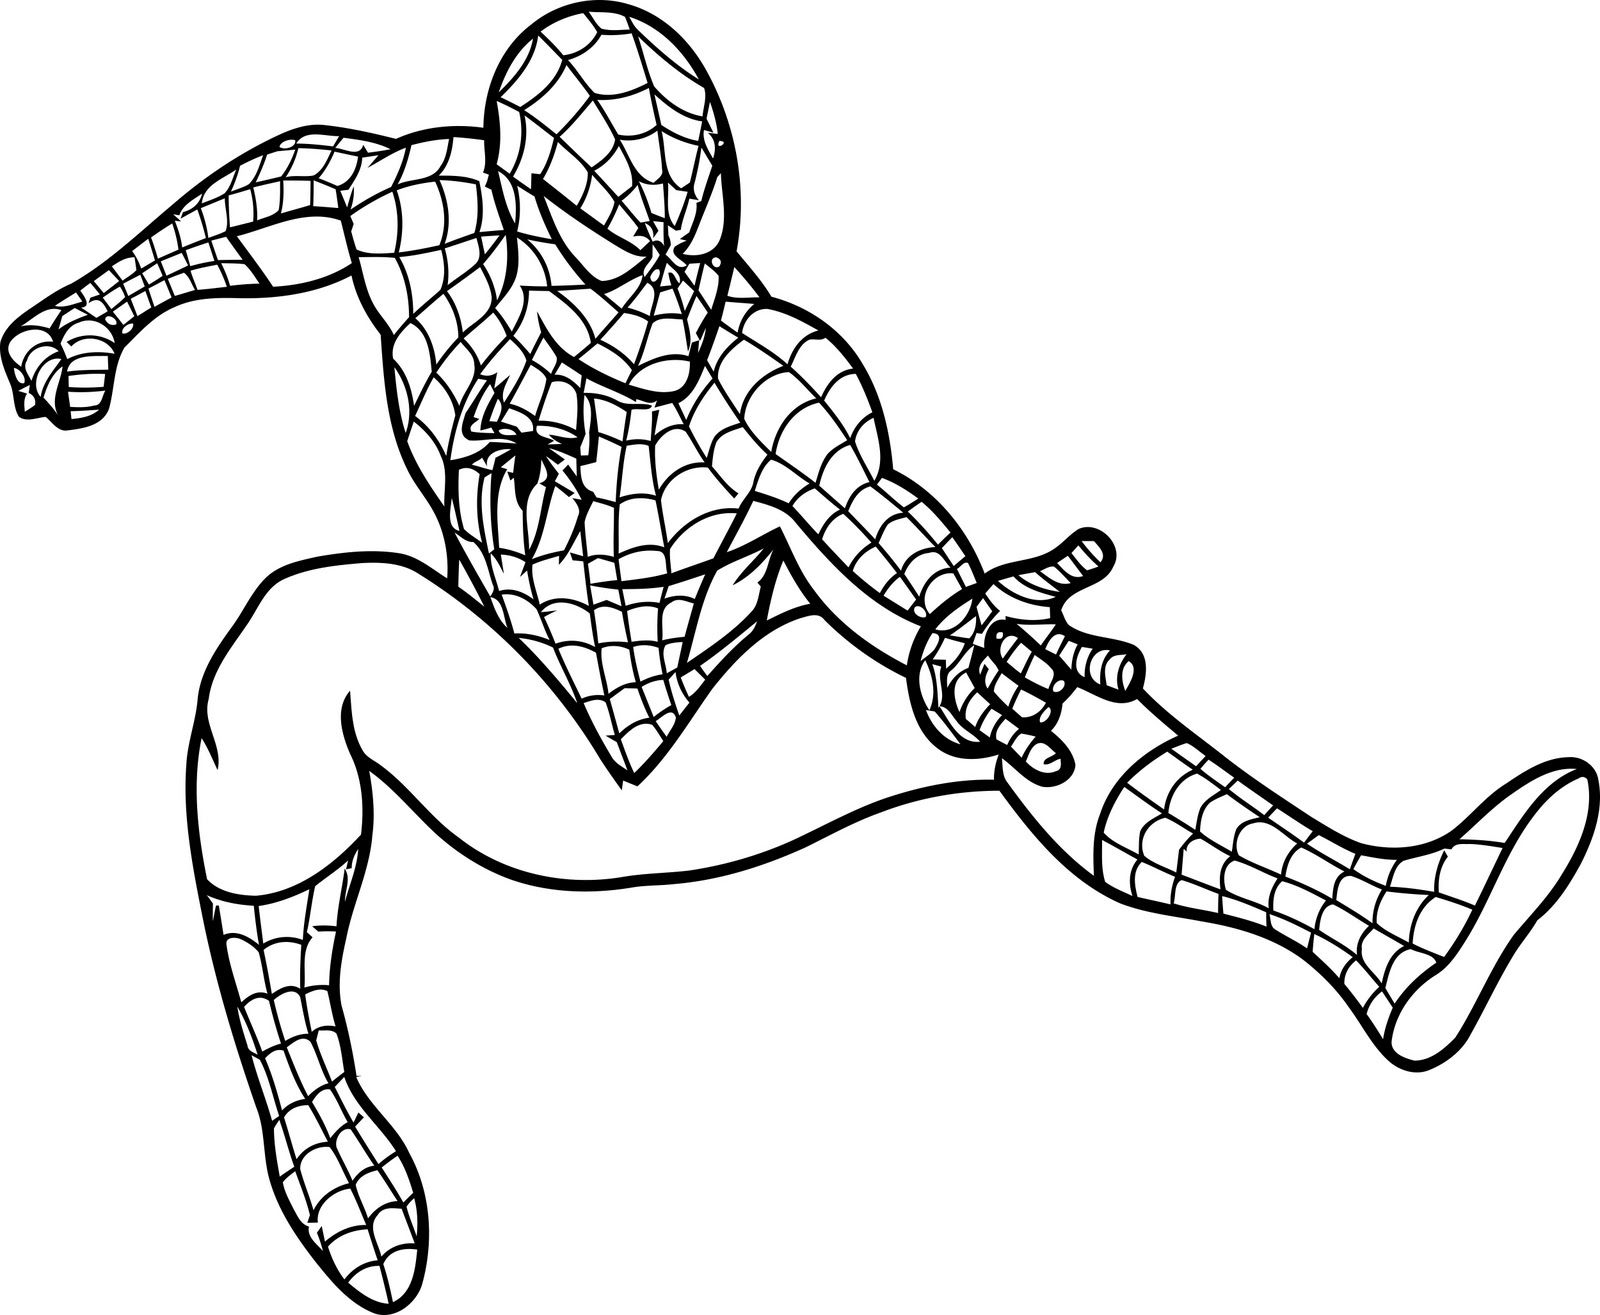 free printable spiderman coloring pages Free Printable Spiderman Coloring Pages For Kids | Projects to Try  free printable spiderman coloring pages